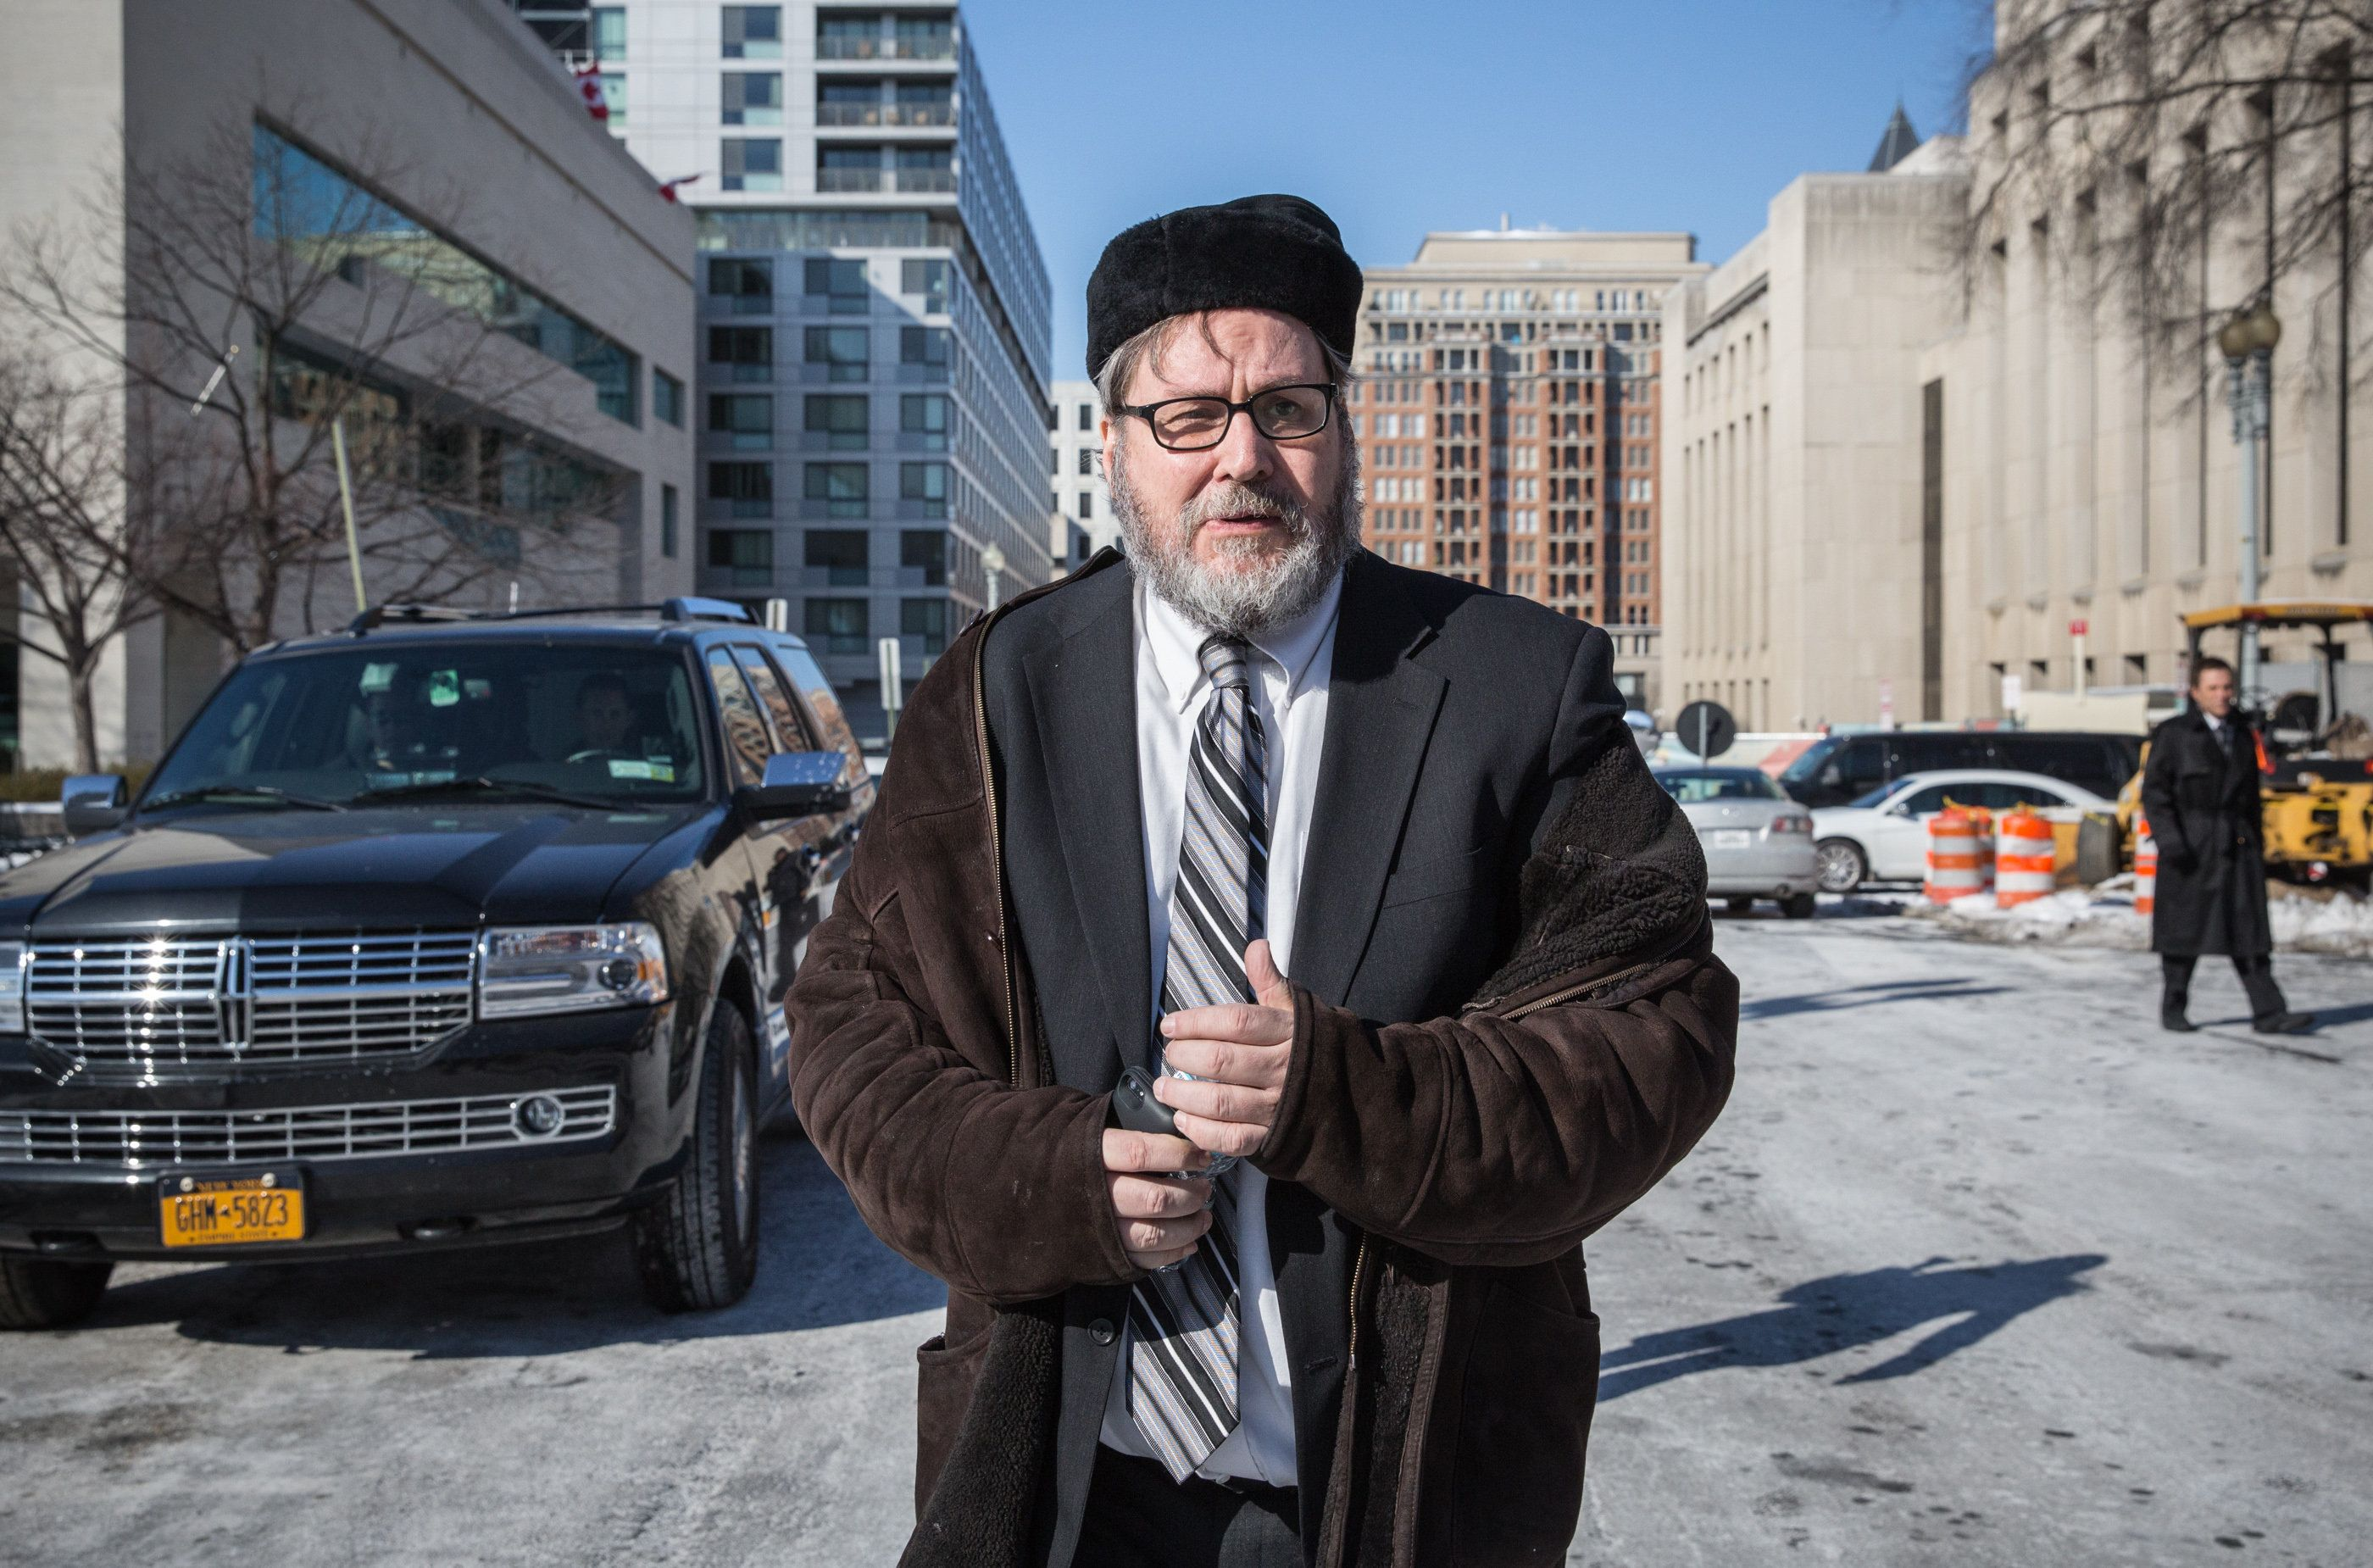 WASHINGTON,DC - FEB19: Rabbi Barry Freundel leaves the District Superior courthouse after his hearing was postponed until the afternoon, February 19, 2015 in Washington, DC. The former spiritual leader at Kesher Israel Congregation in Georgetown who is charged with six counts of misdemeanor voyeurism for allegedly videotaping women as they undressed in preparation to use the mikvah at The National Capital Mikvah. (Photo by Evelyn Hockstein/For The Washington Post via Getty Images)